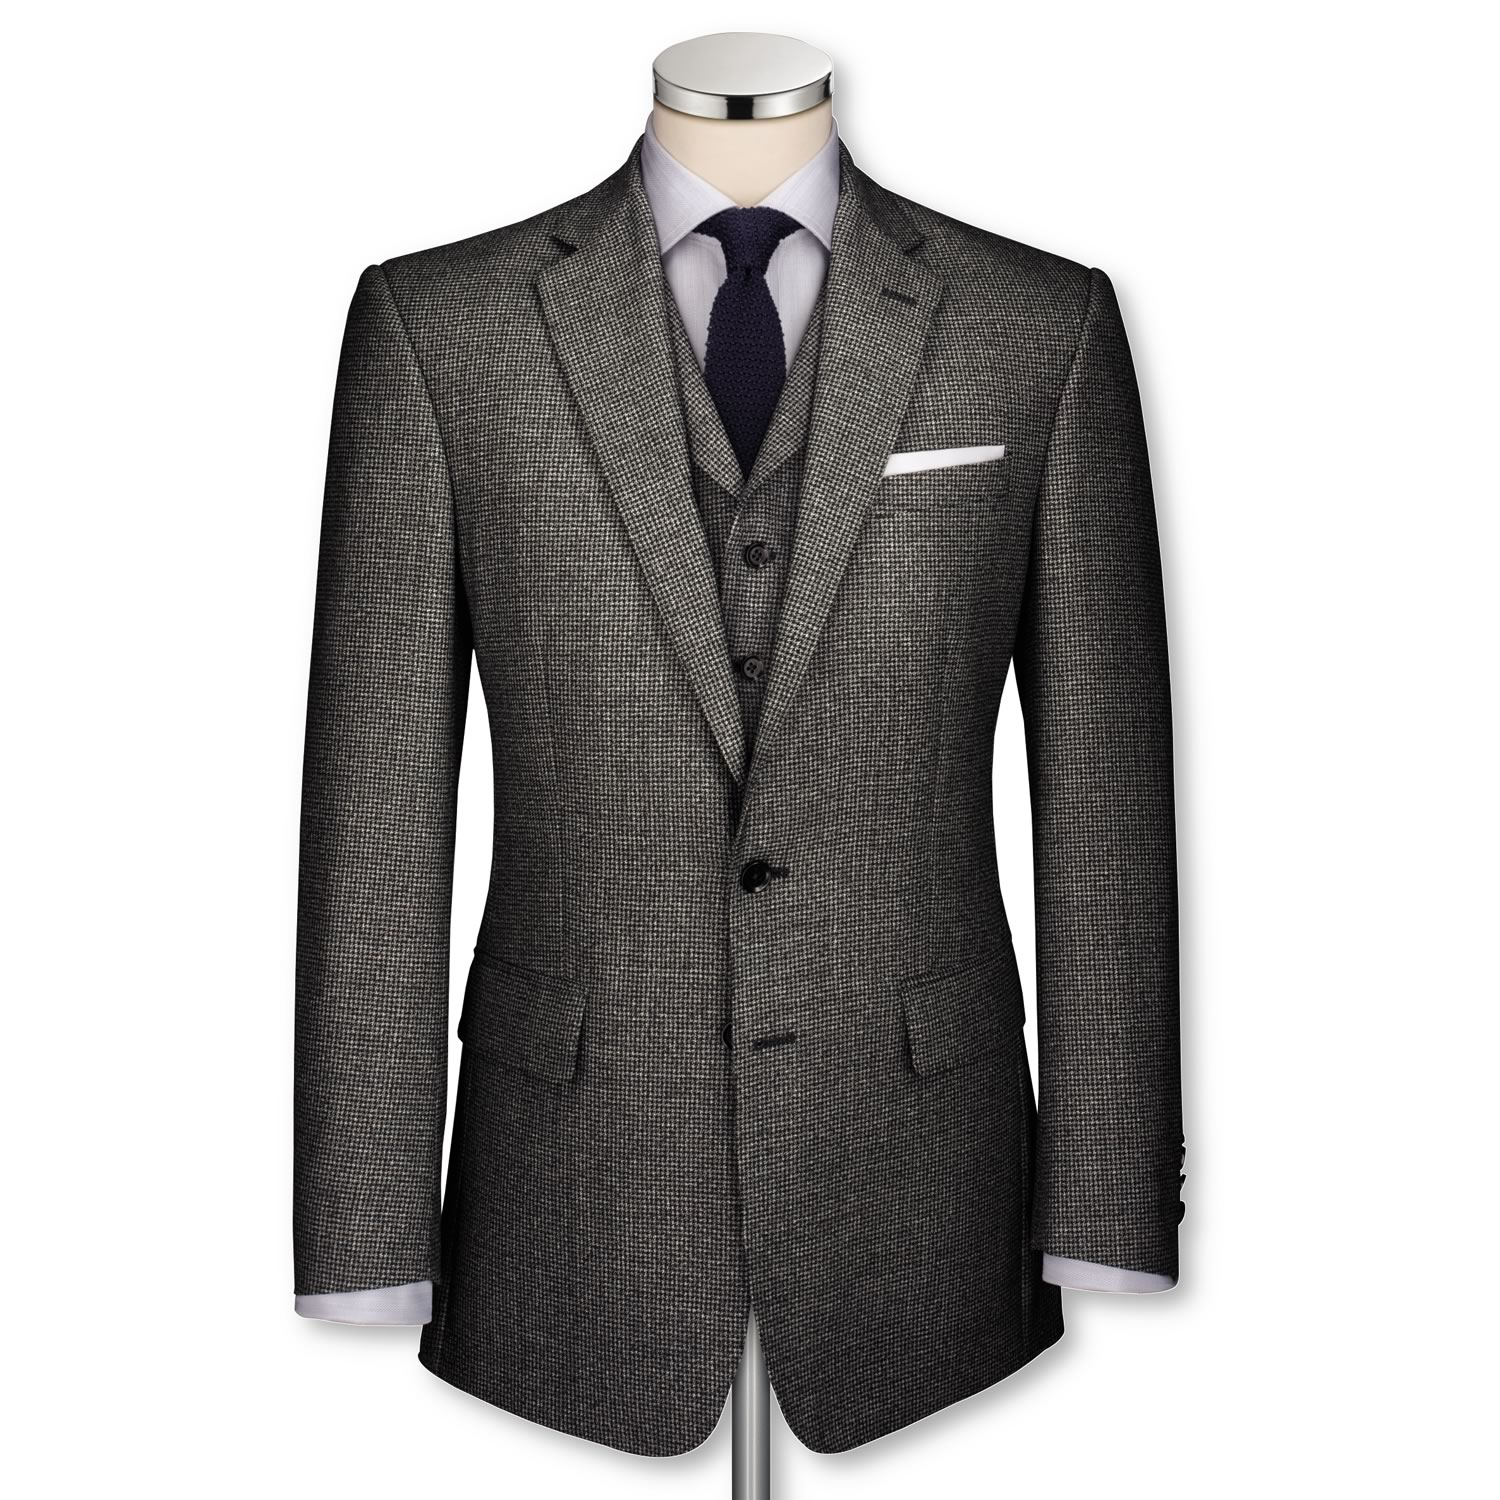 It is an image of Clean The Black Label Suits